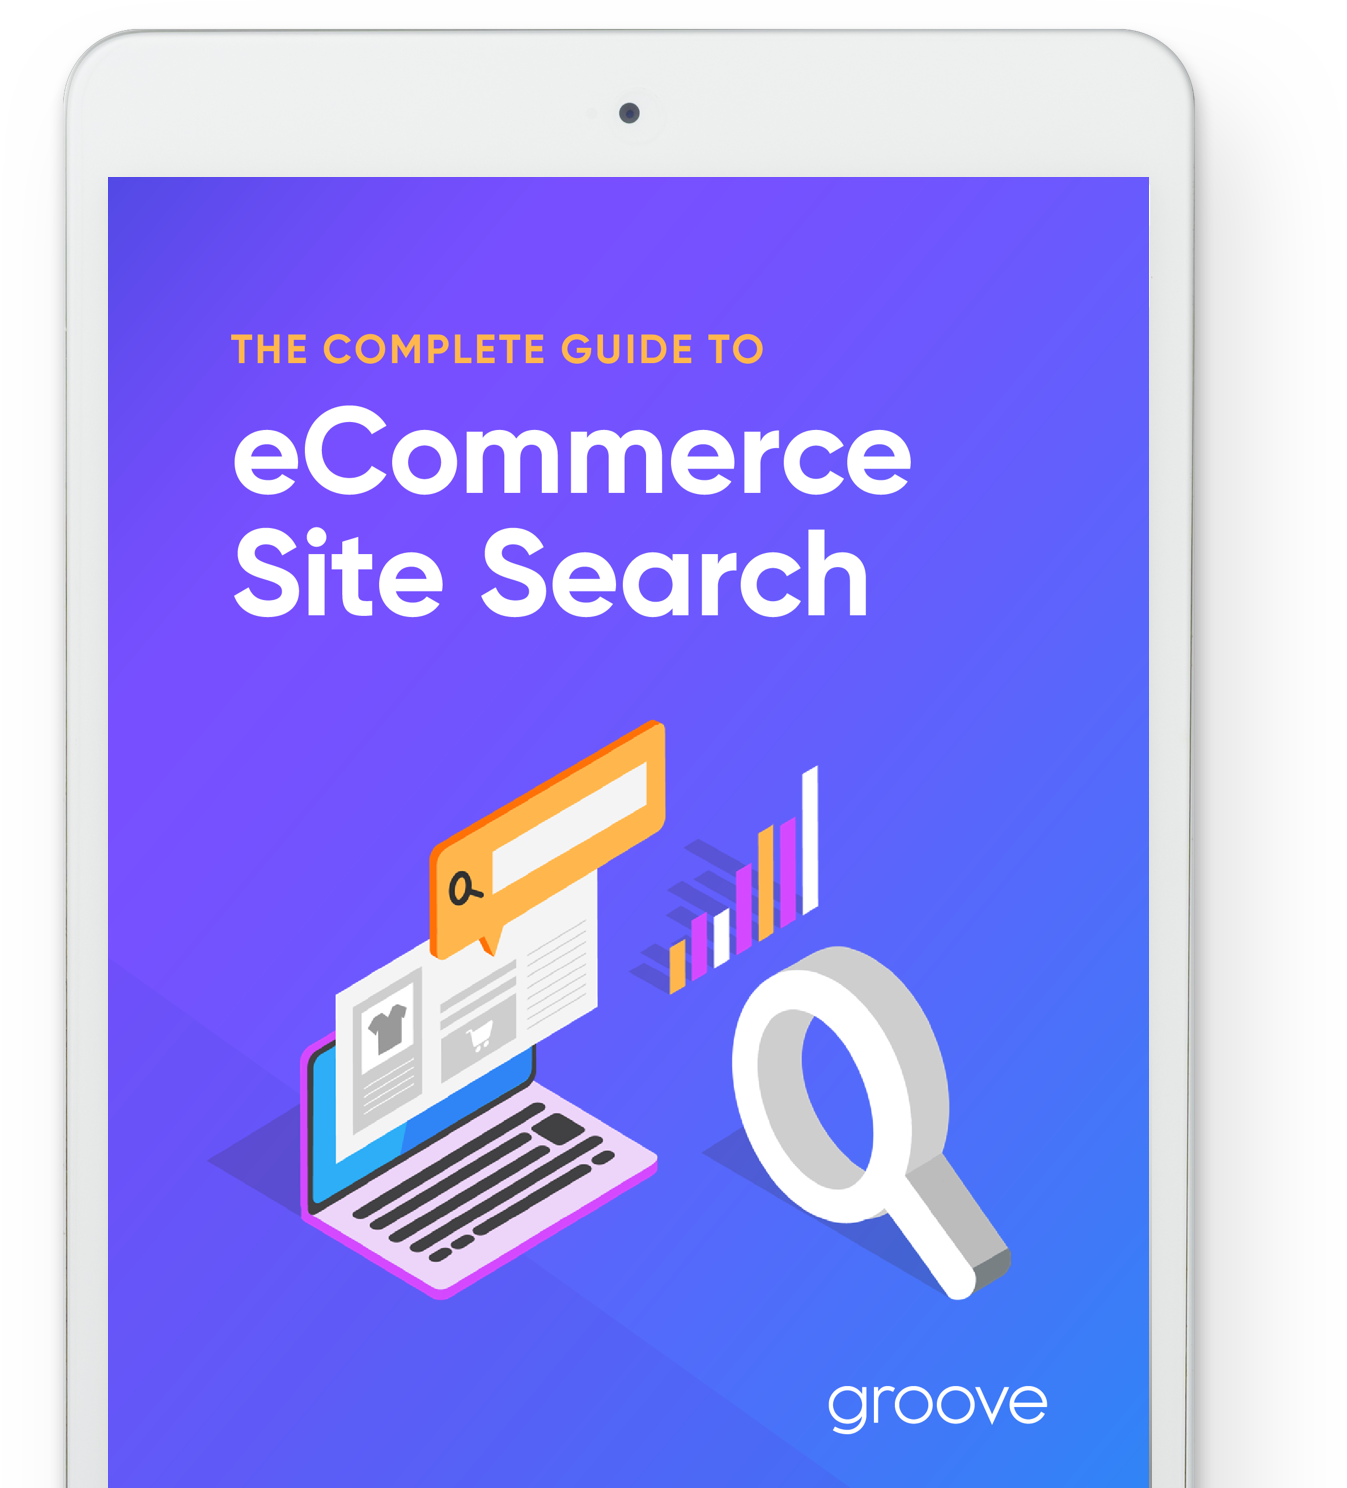 eCommerce SIte Search Guide